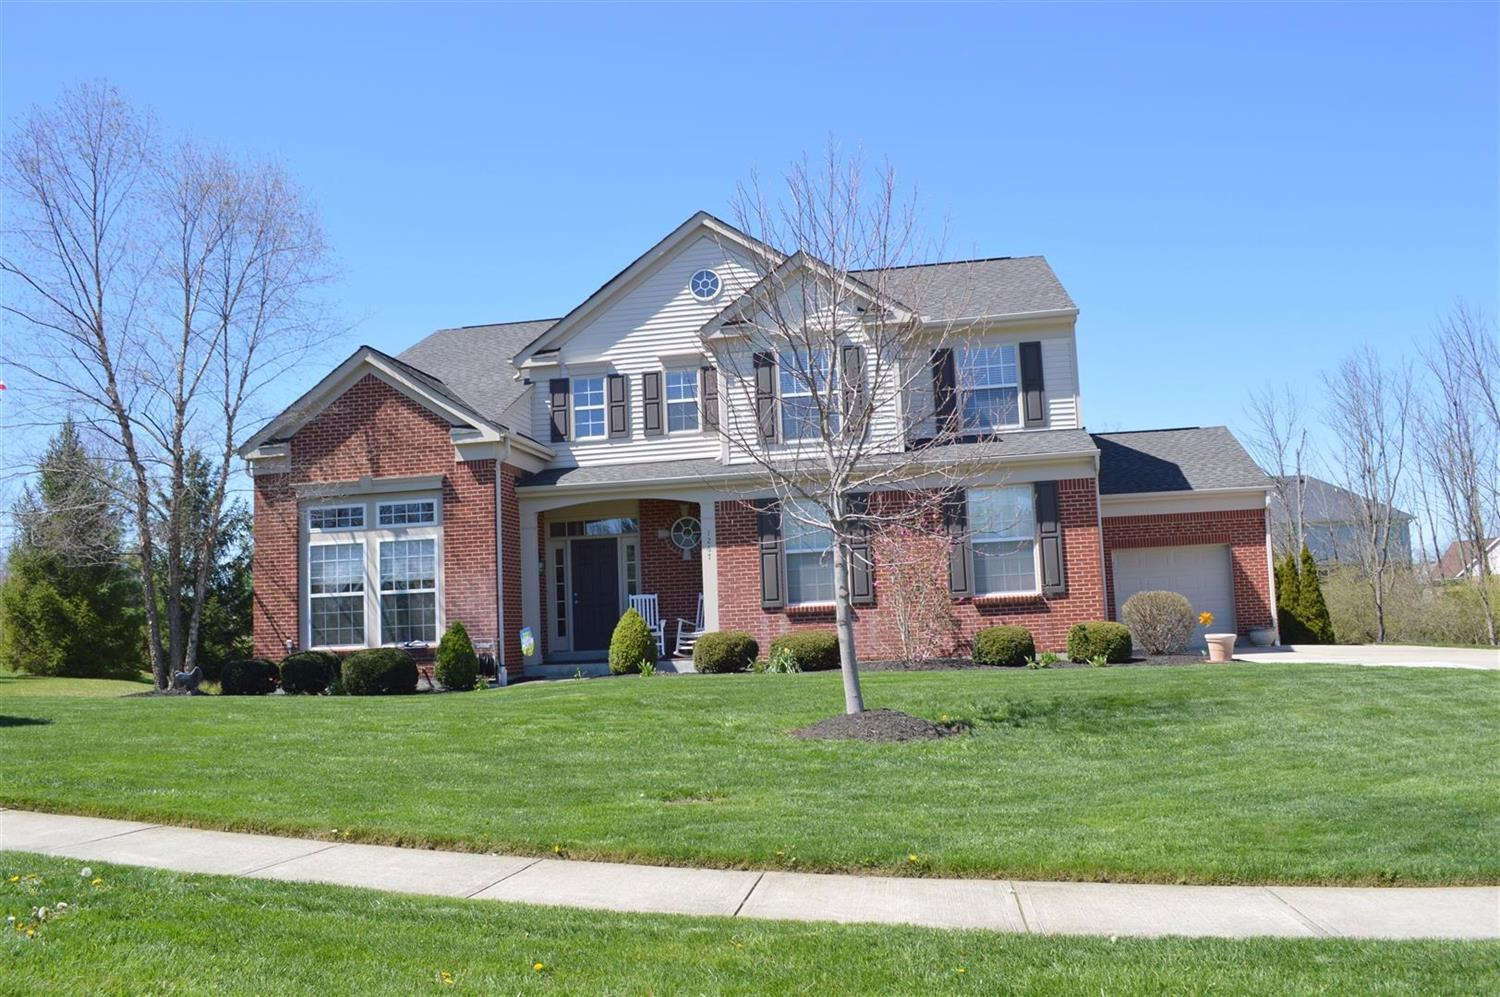 1267 Fox Hollow Drive, Lebanon, OH 45036